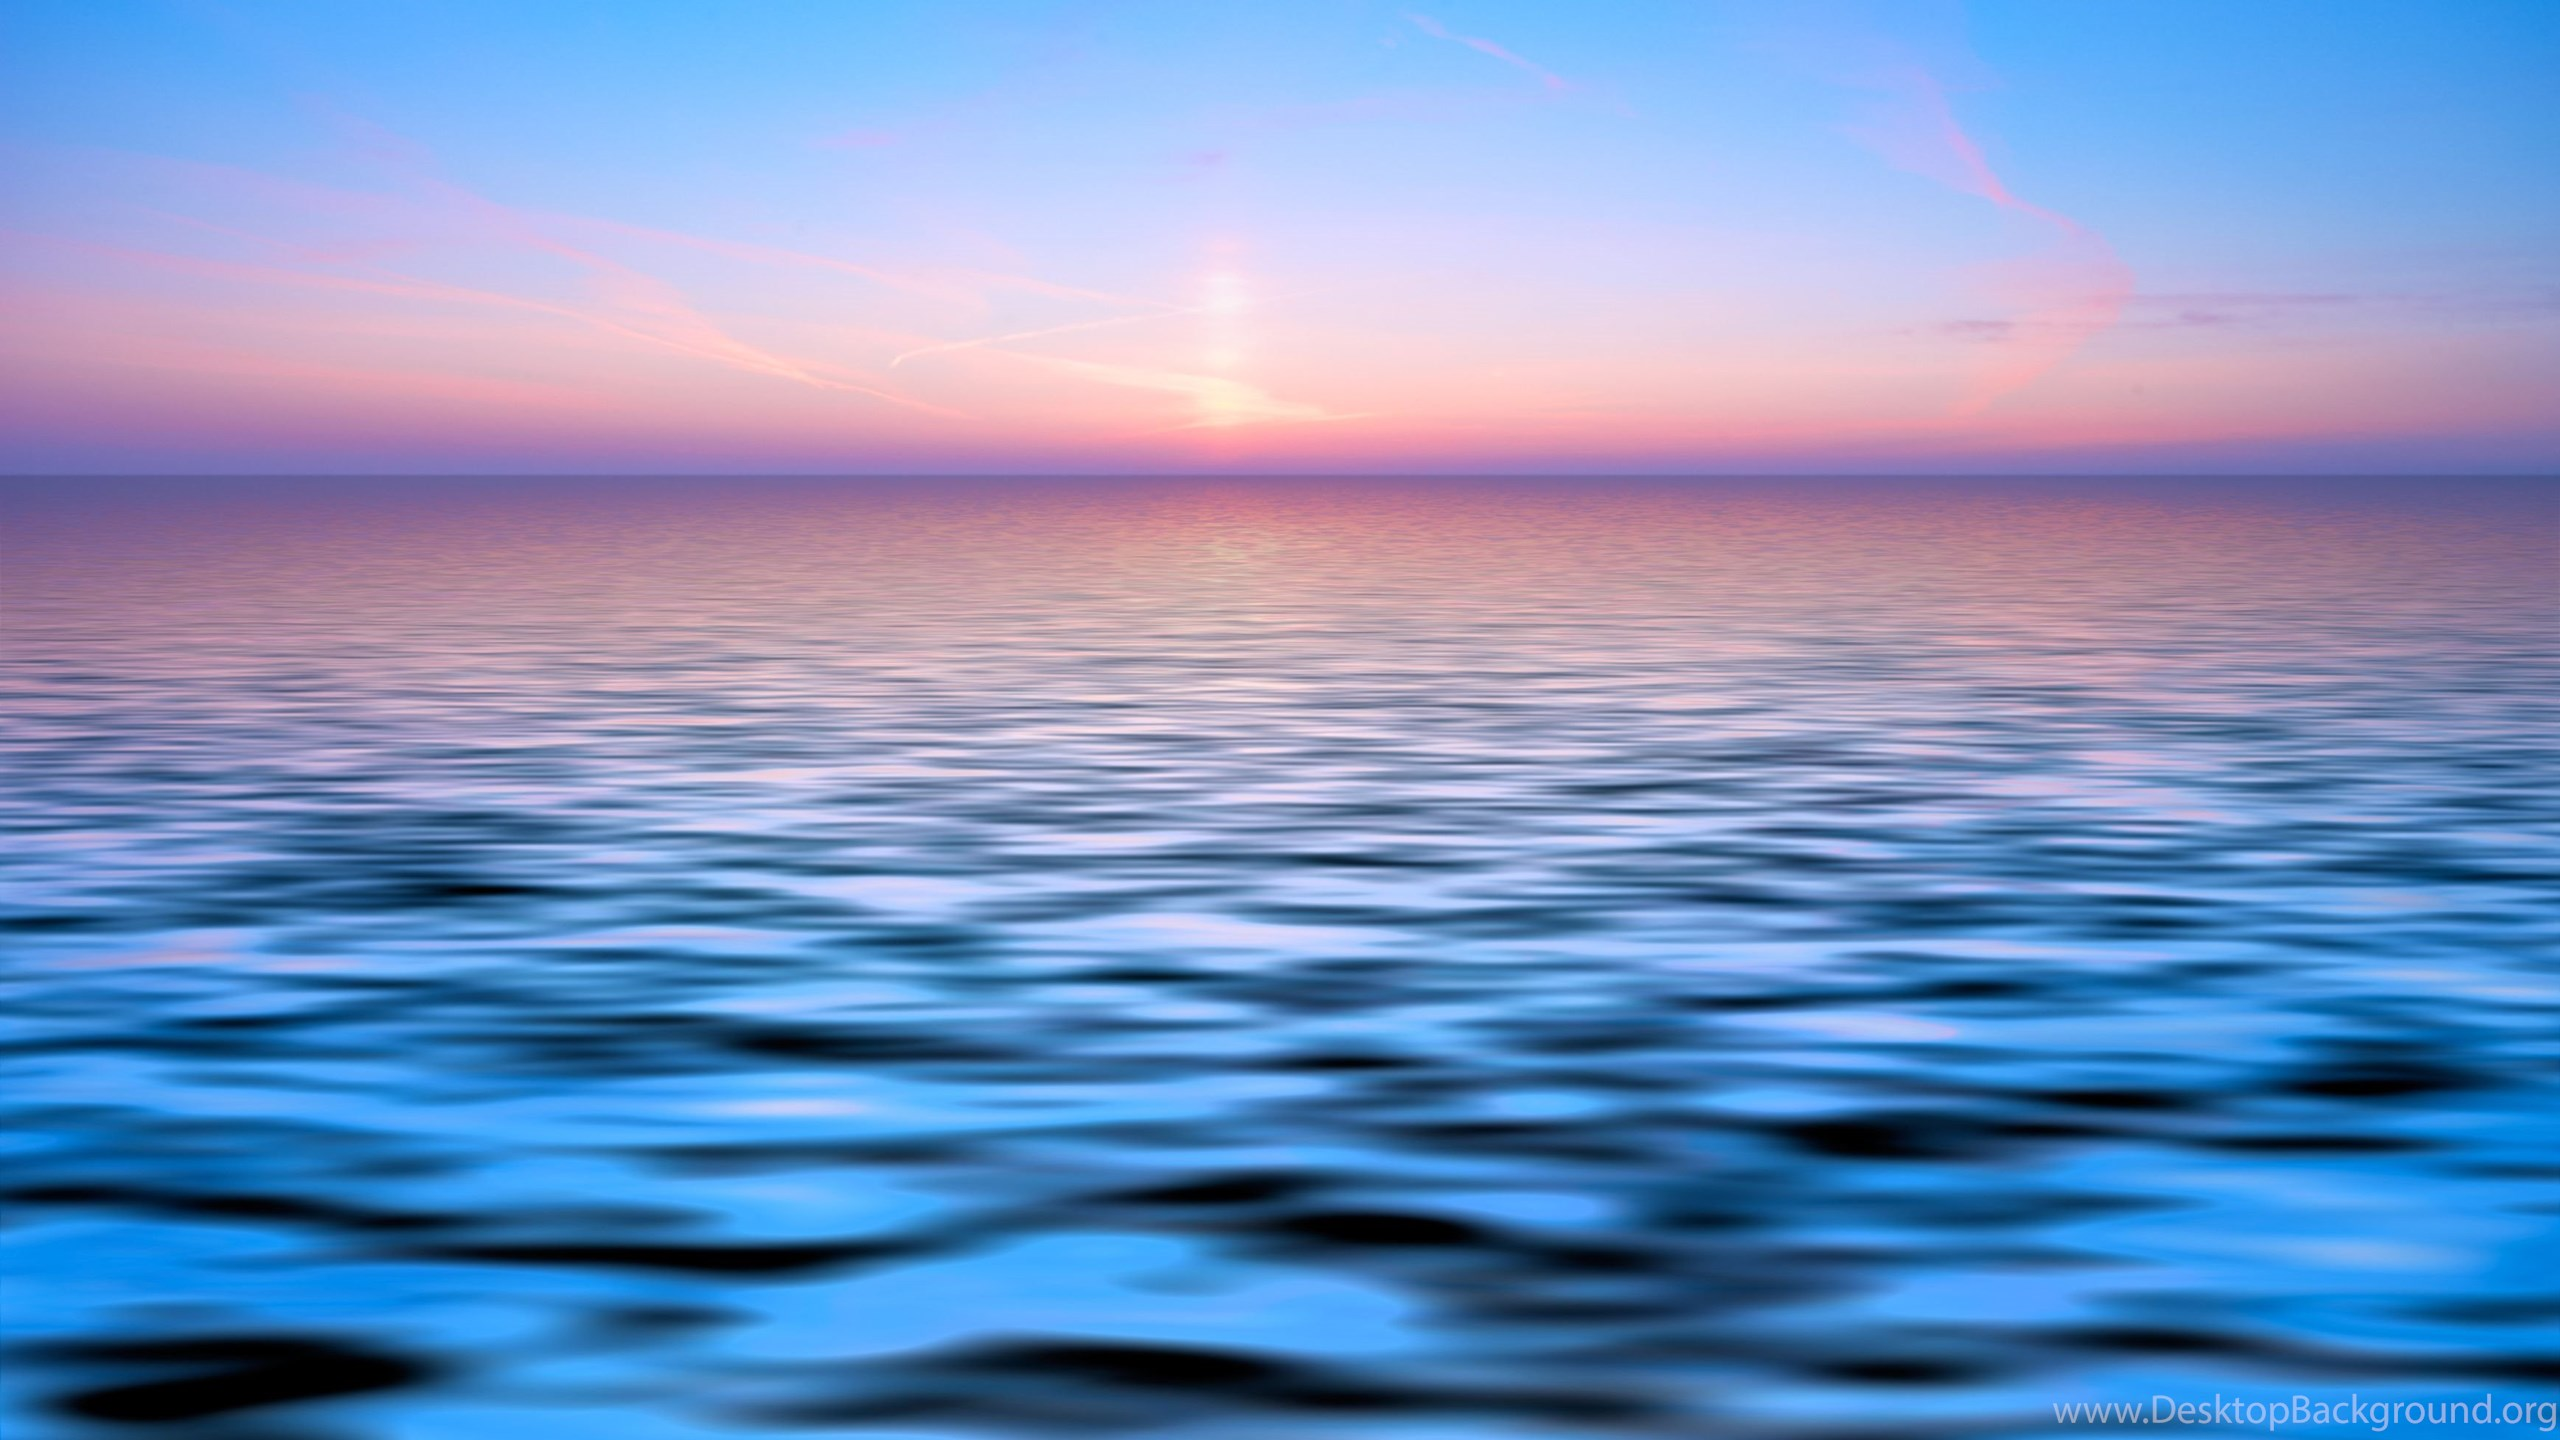 Ocean wallpaper images backgrounds desktop background - Ocean pictures for desktop background ...